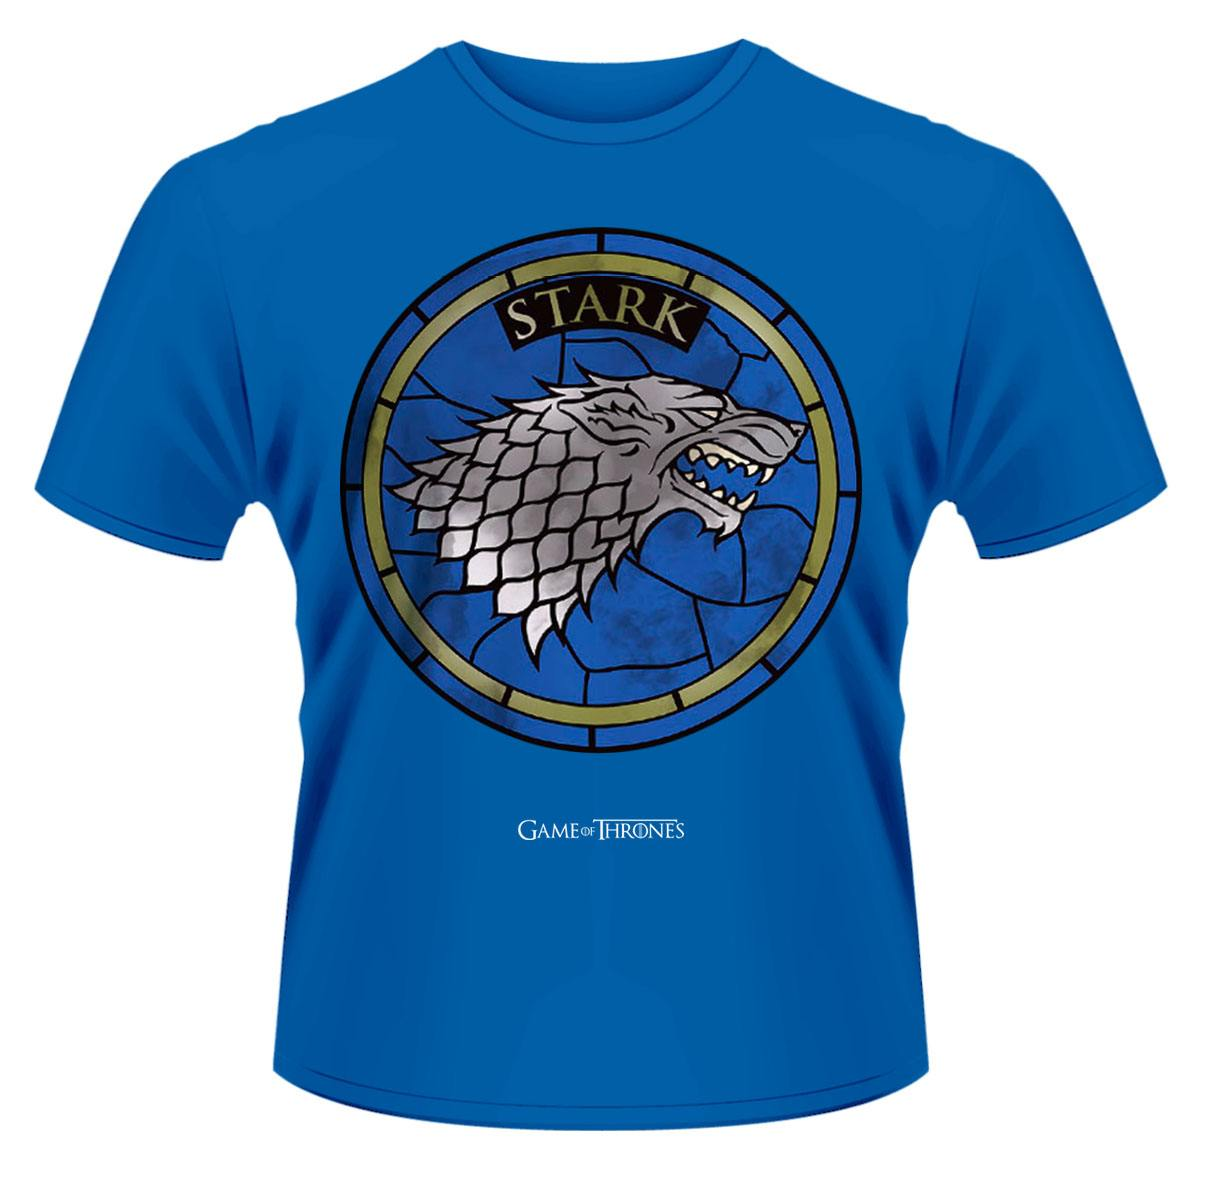 Game of Thrones T-Shirt House Stark blue Size L